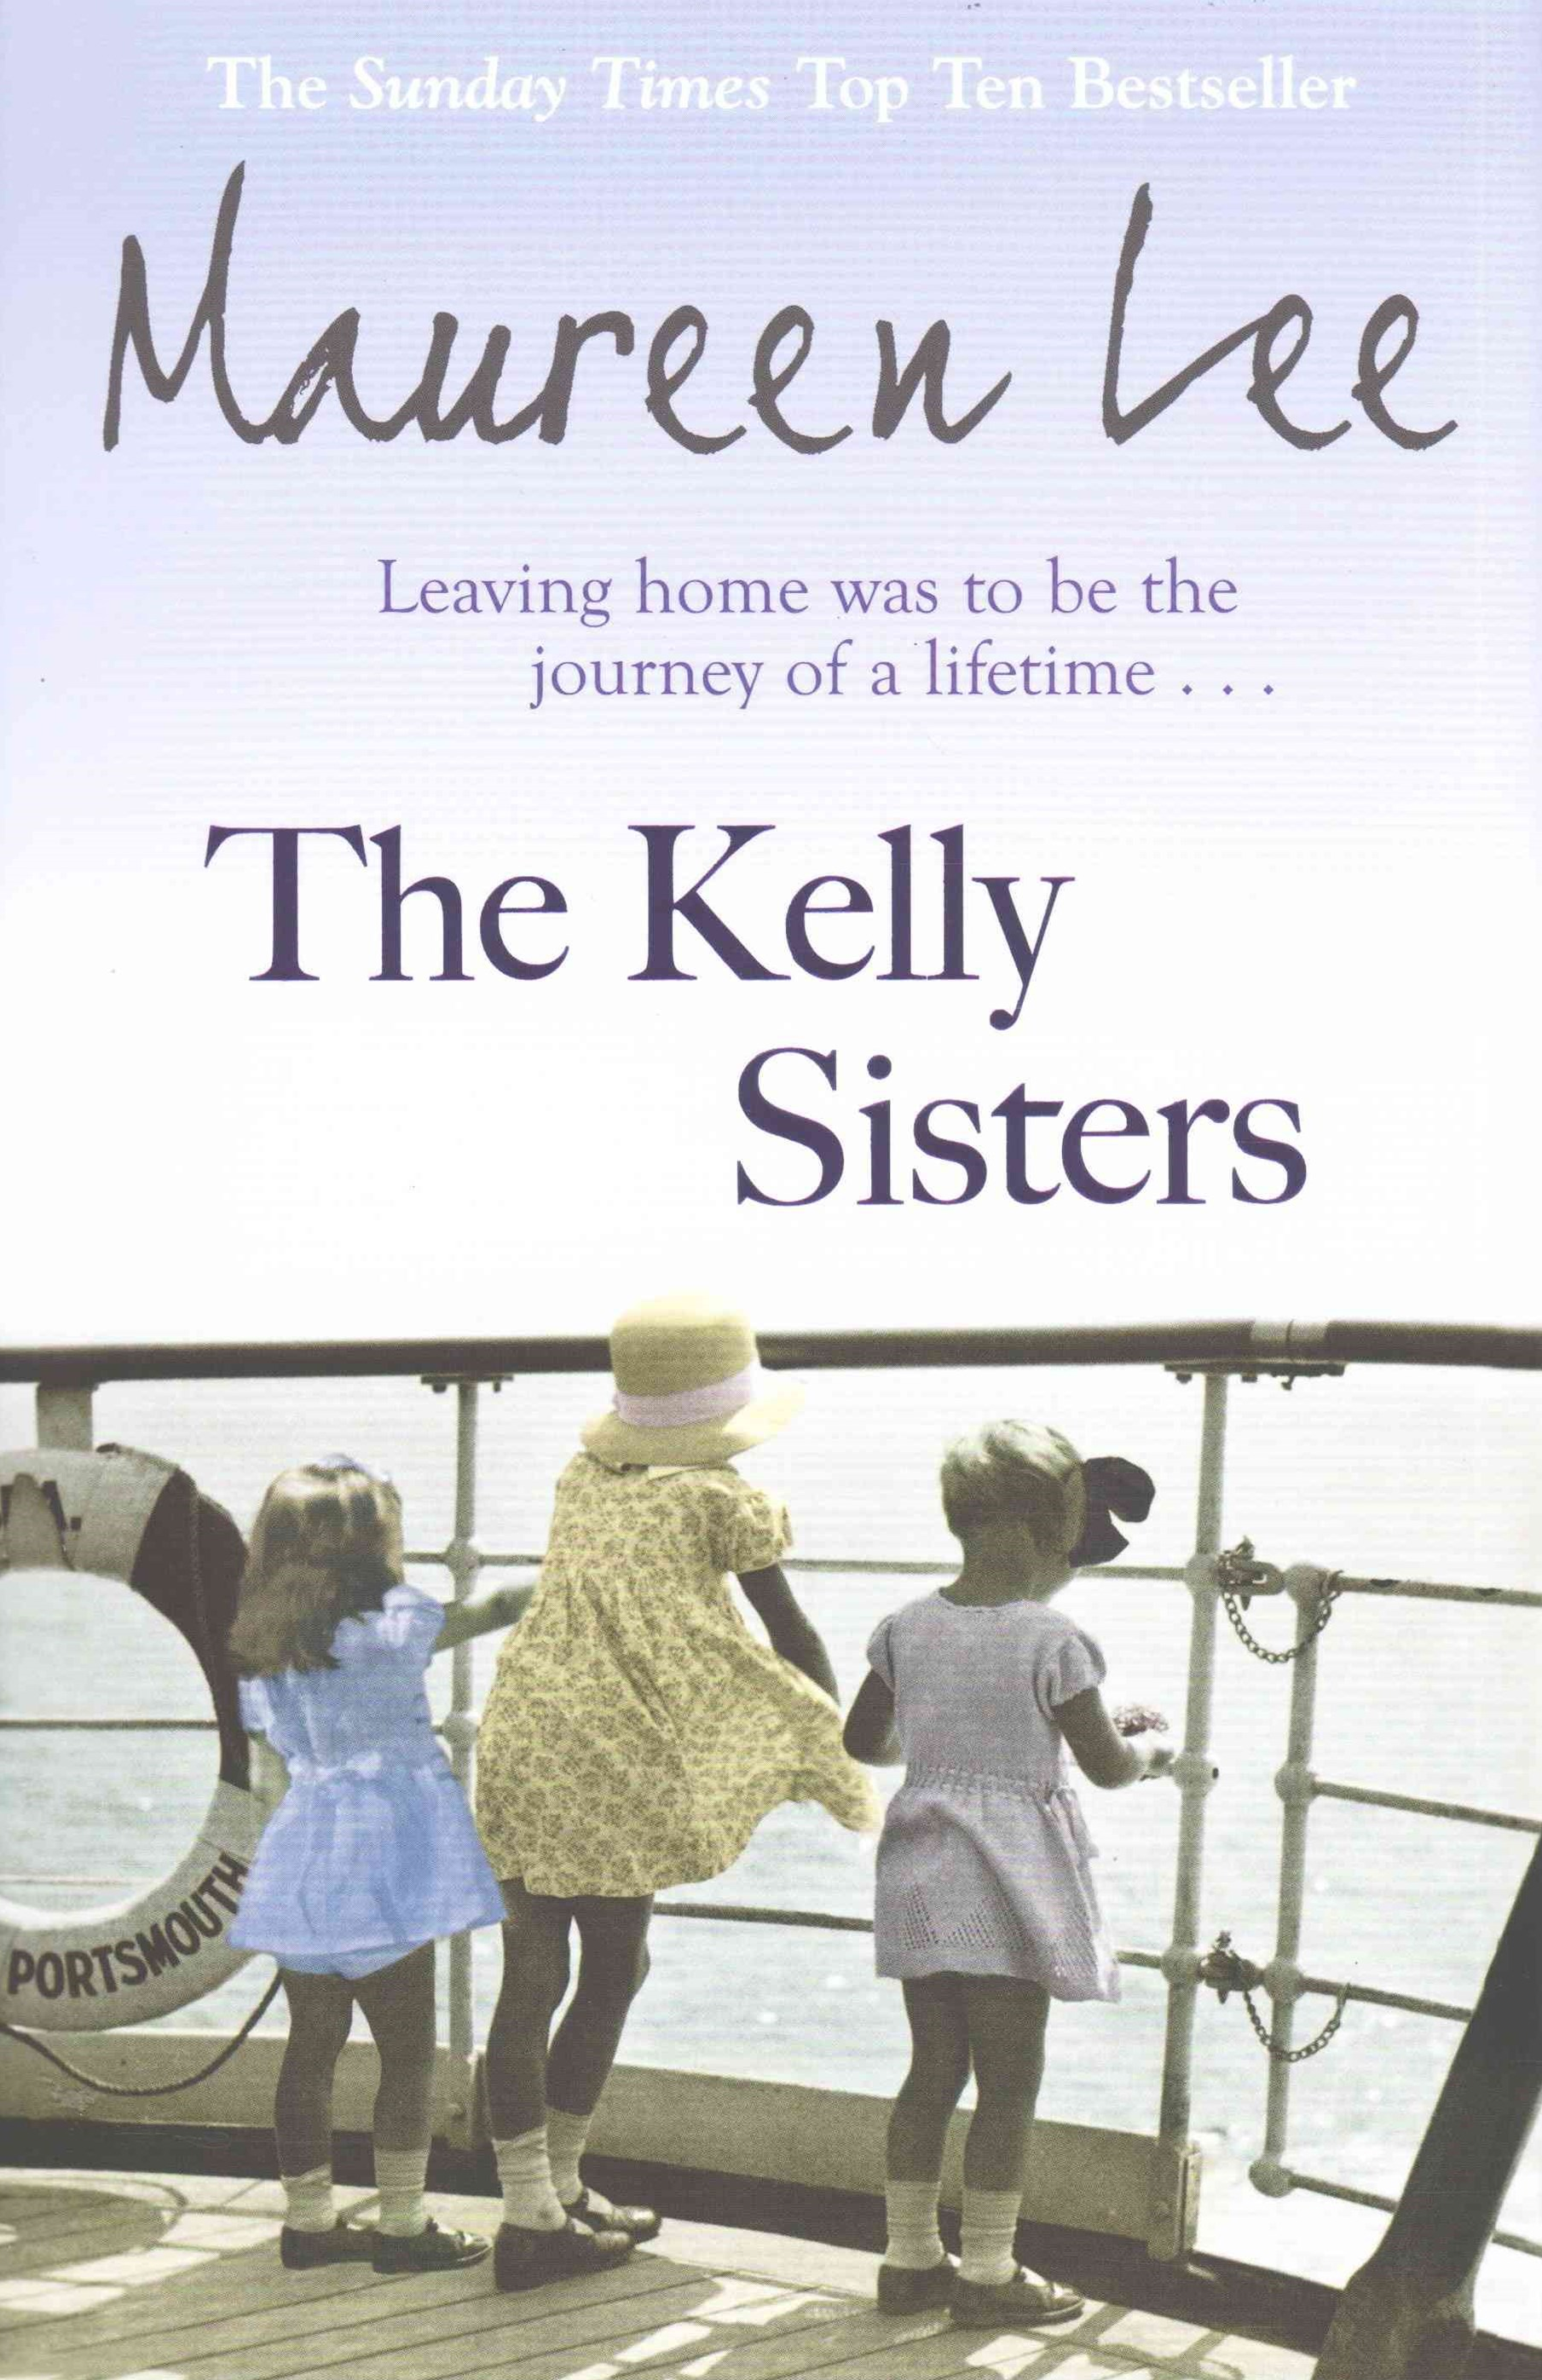 The Kelly Sisters